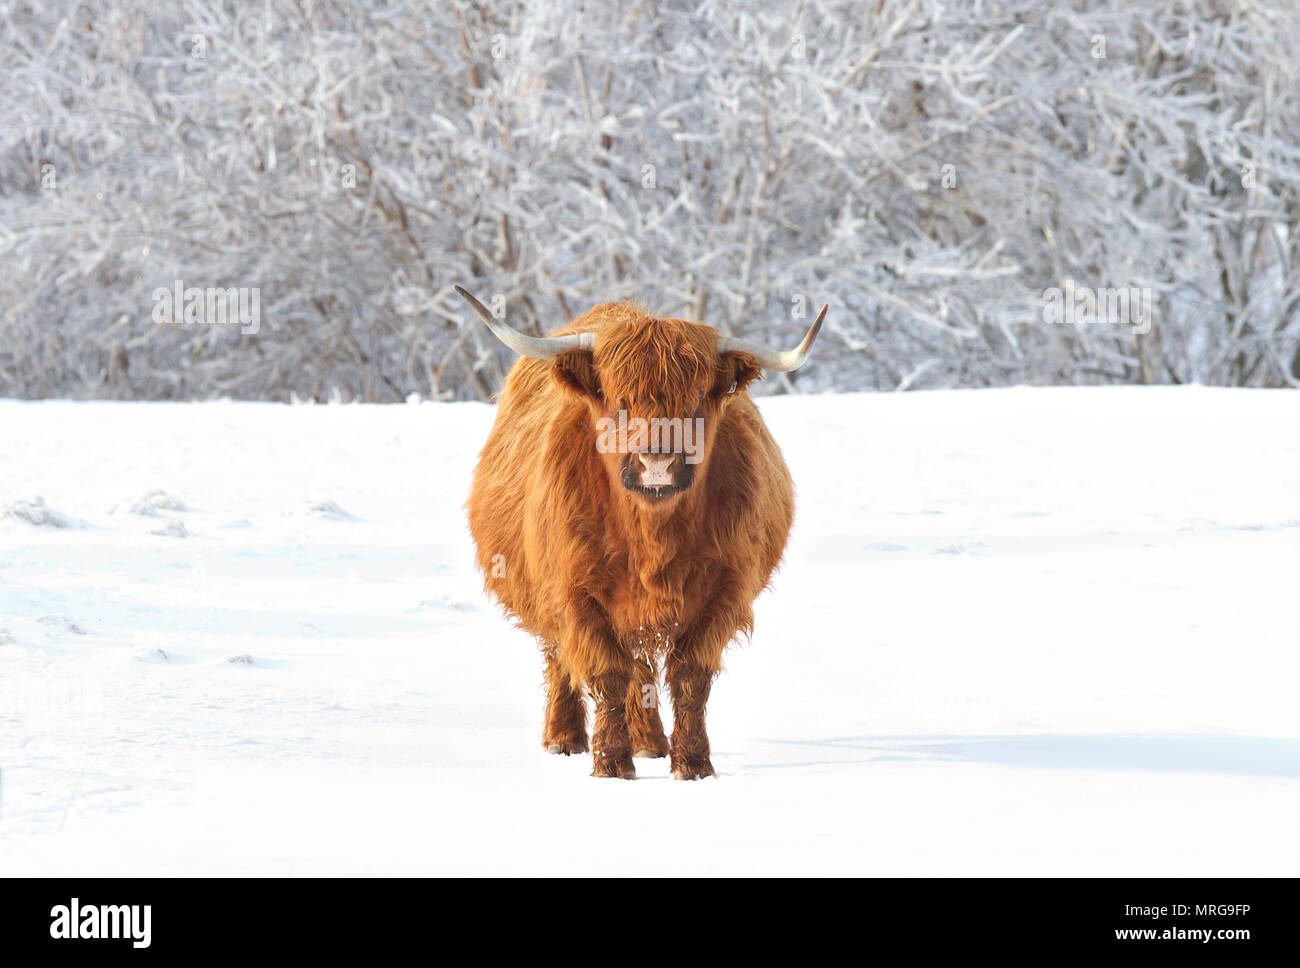 Highland cow standing in a snowy field in winter in Canada - Stock Image